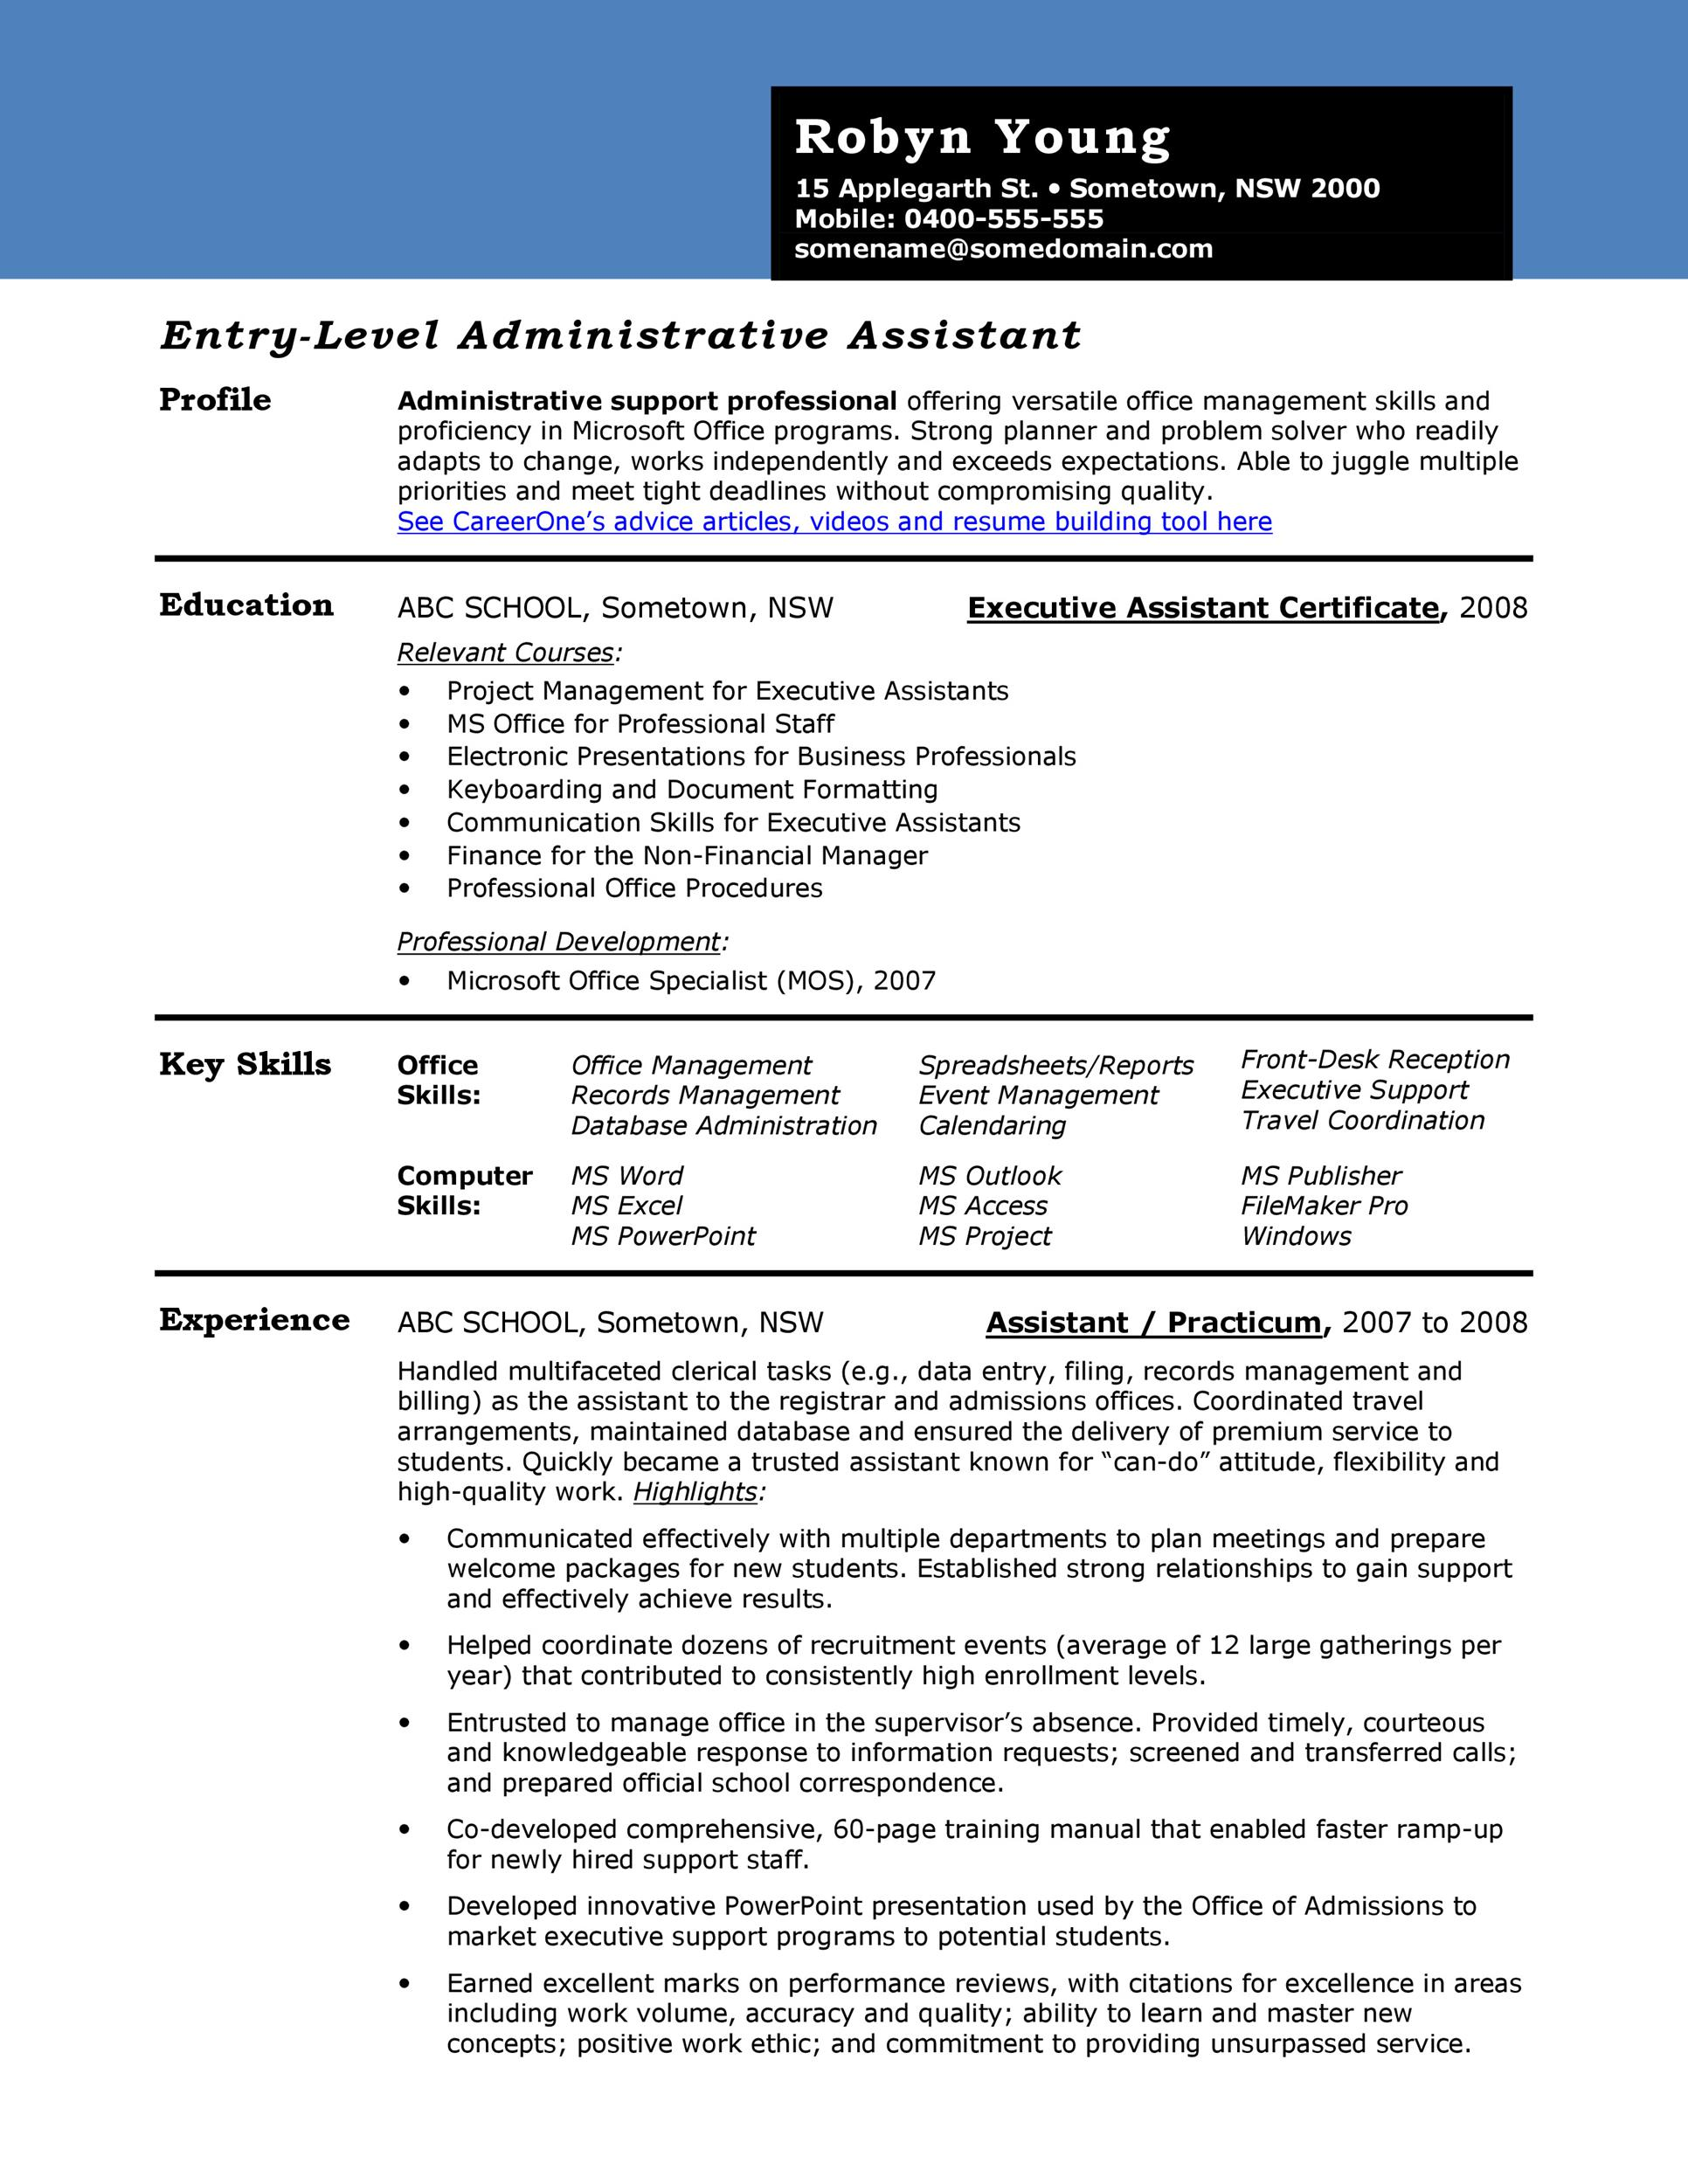 administrative assistant resume samples 2016